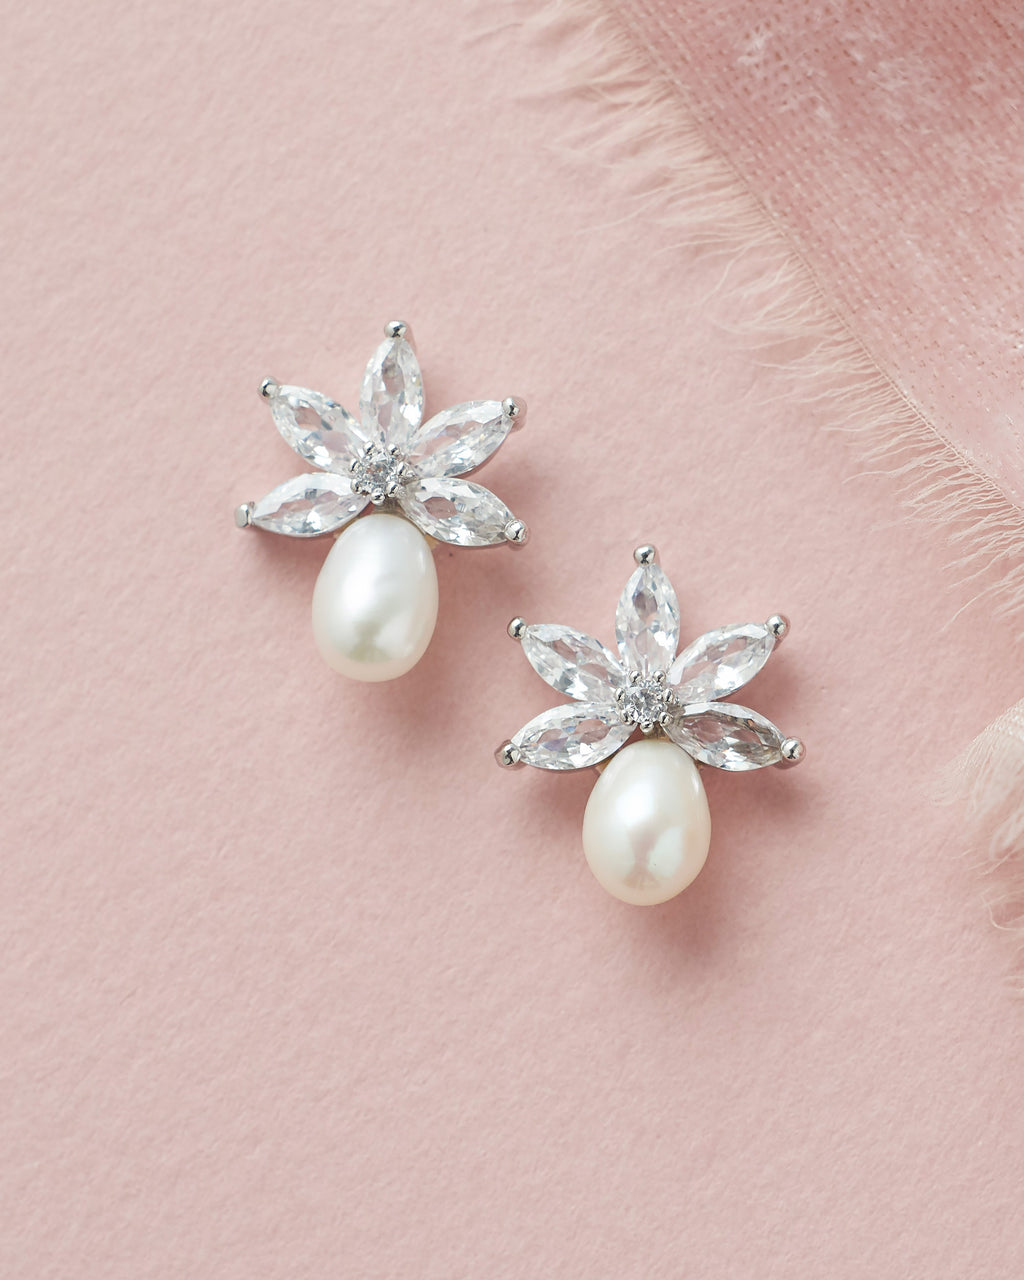 Pearl Bridal Earrings Stud